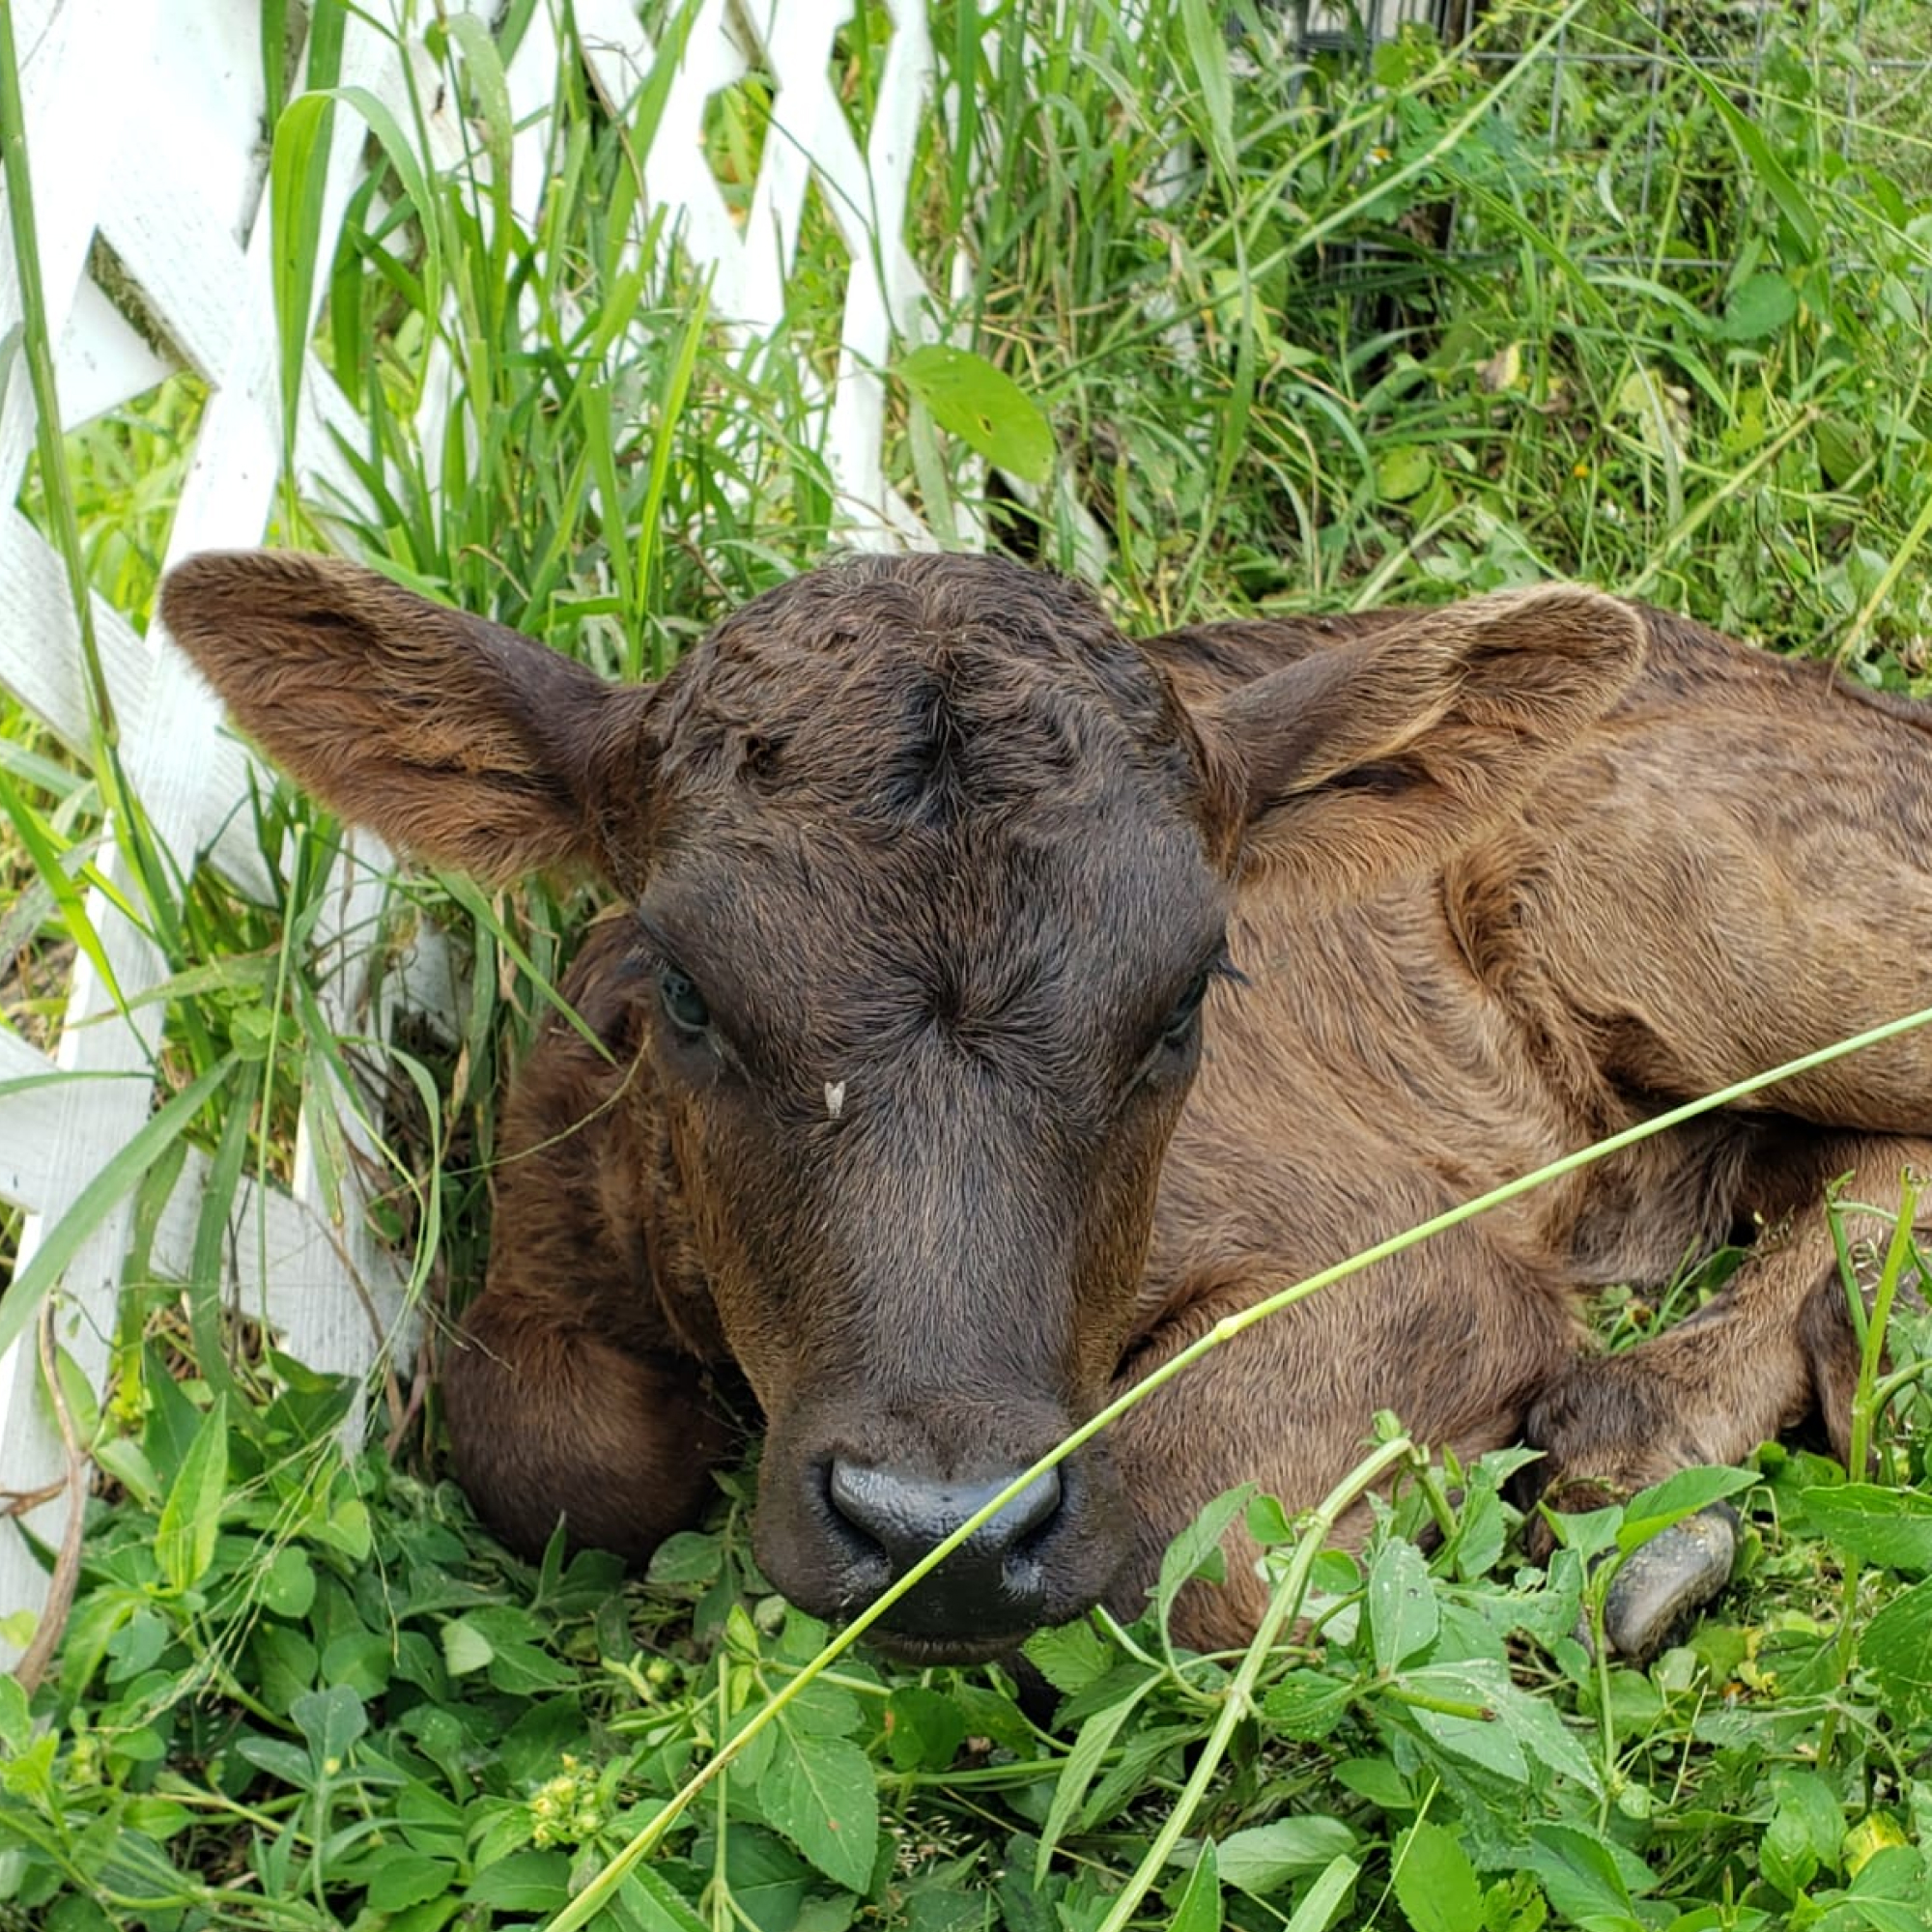 Adopt a Cow at the South Florida Society for the Prevention of Cruelty to Animals